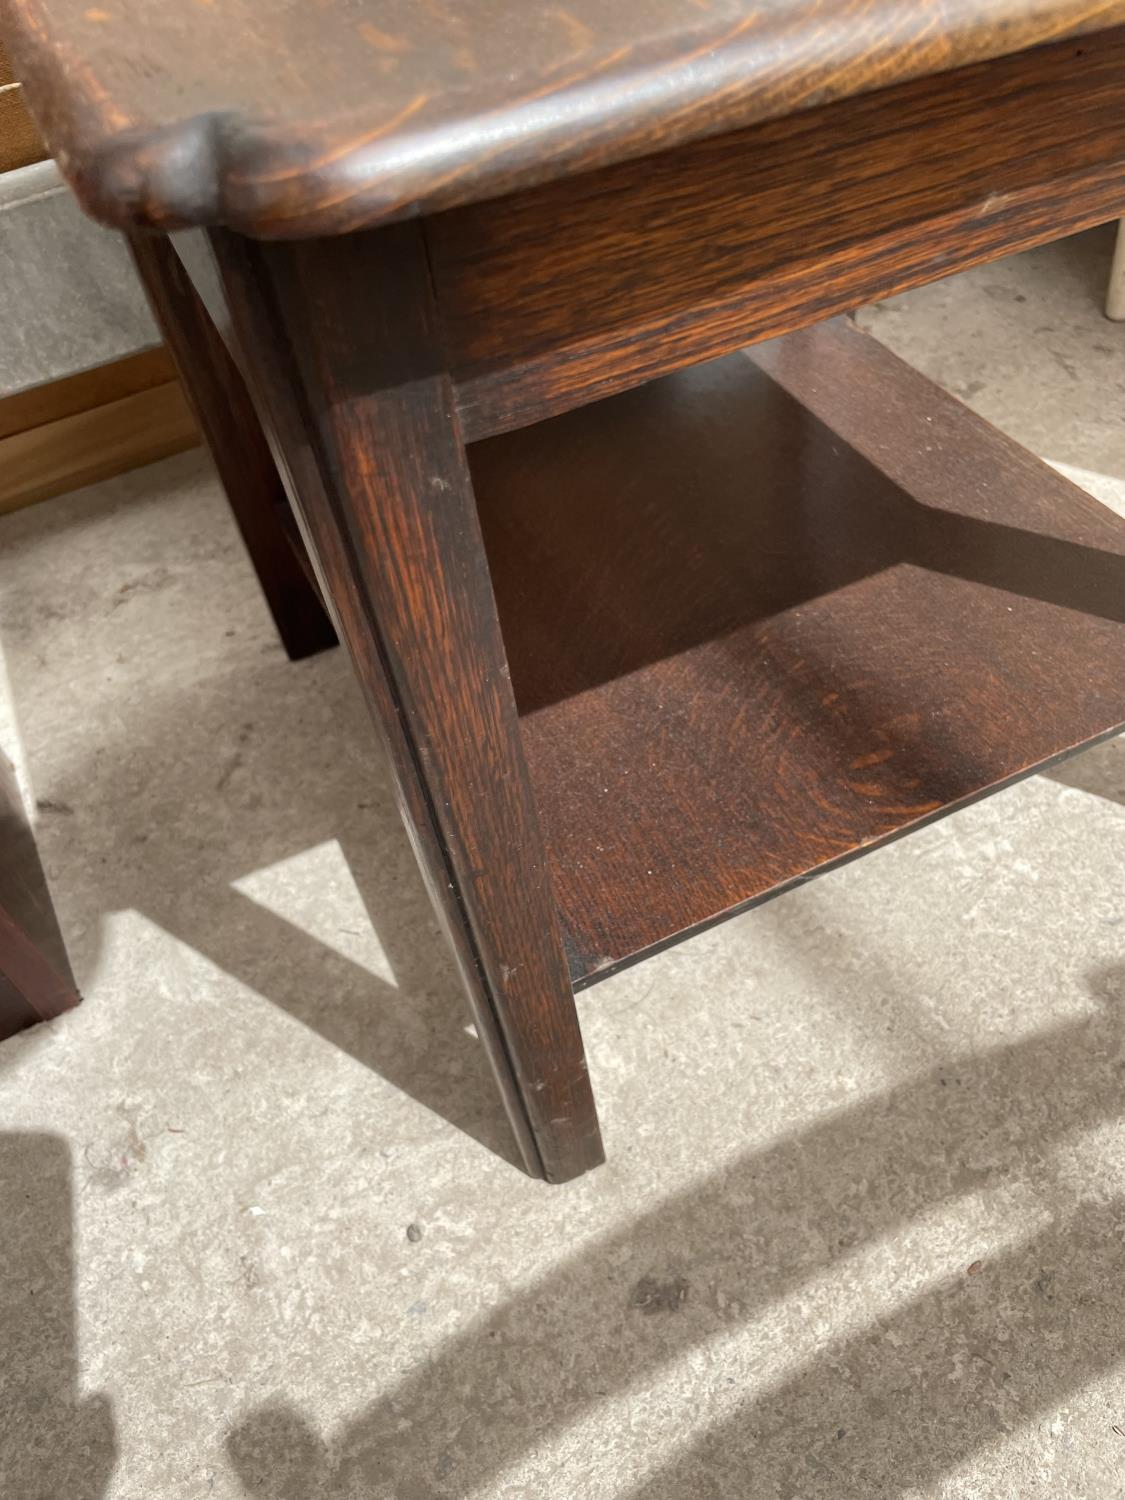 AN OAK OCCASIONAL TABLE WITH LOWER SHELF - Image 3 of 3